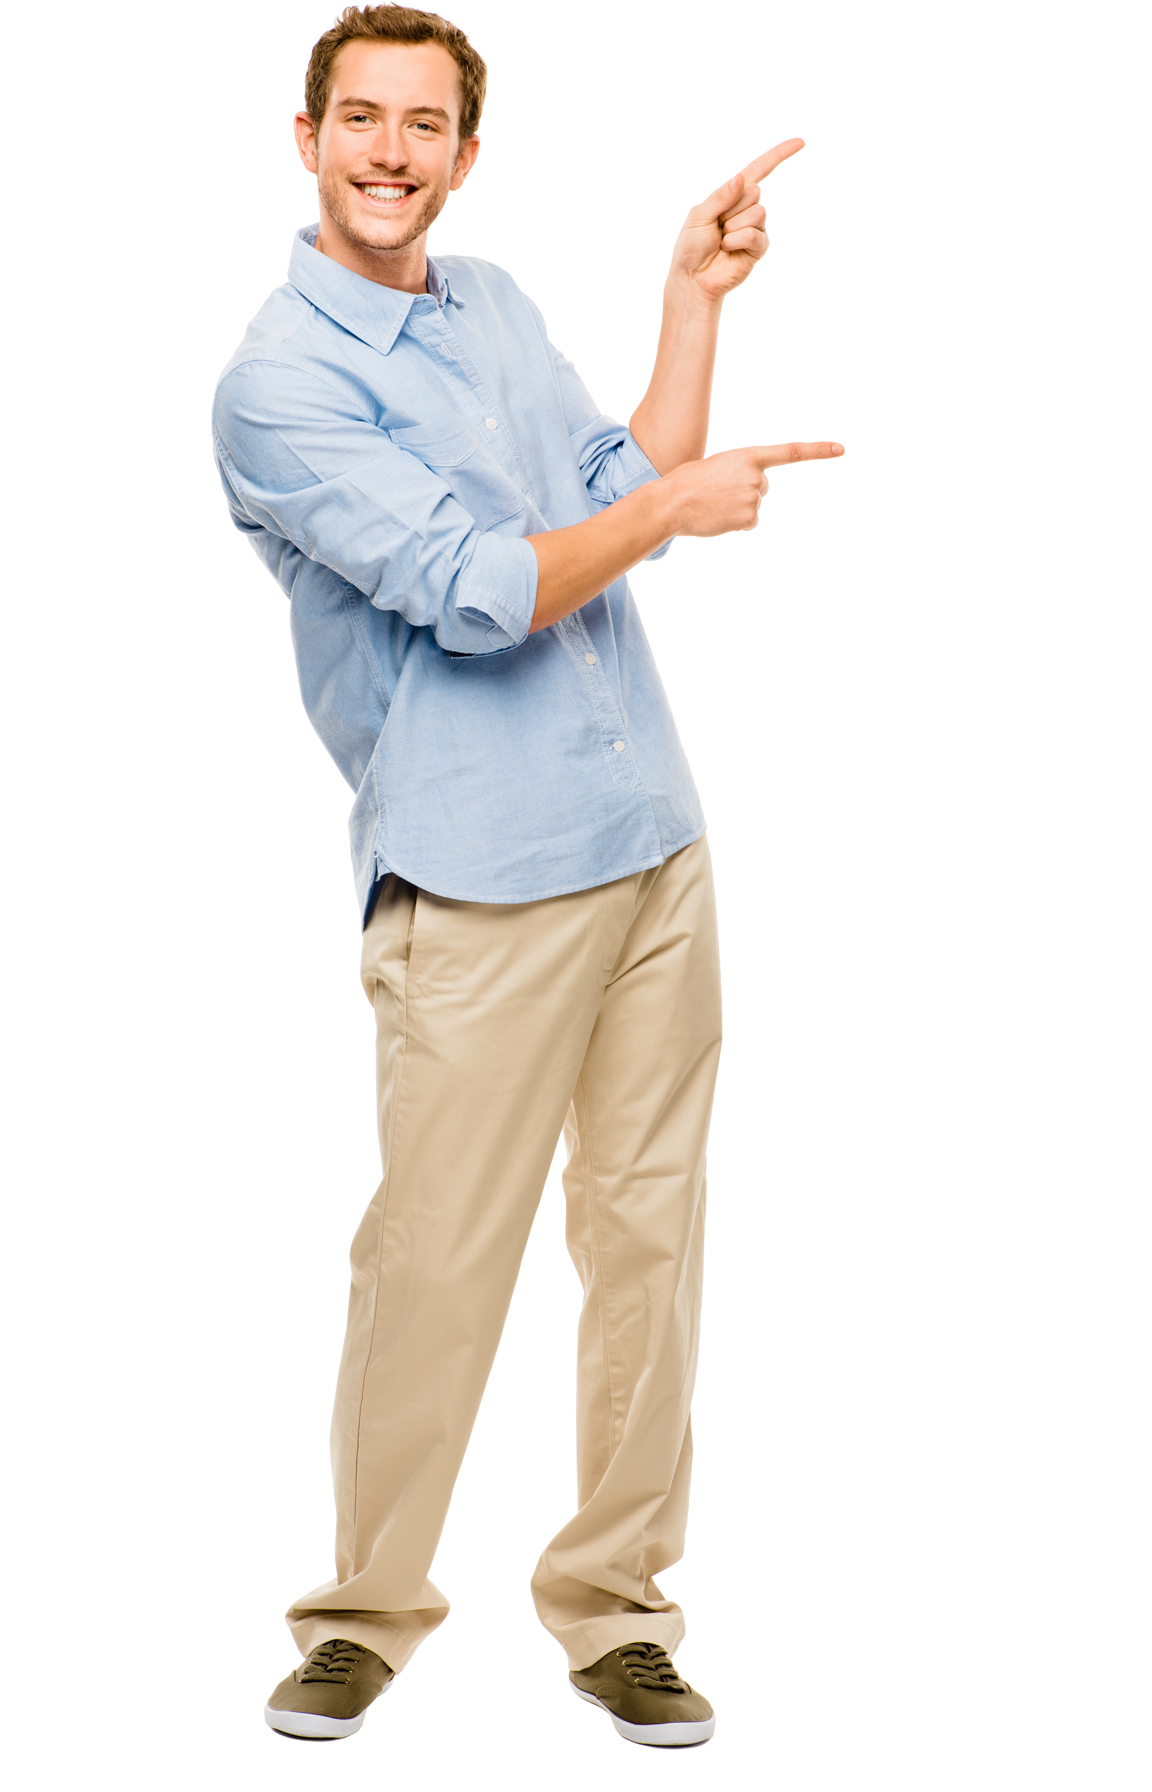 People pointing png. Image